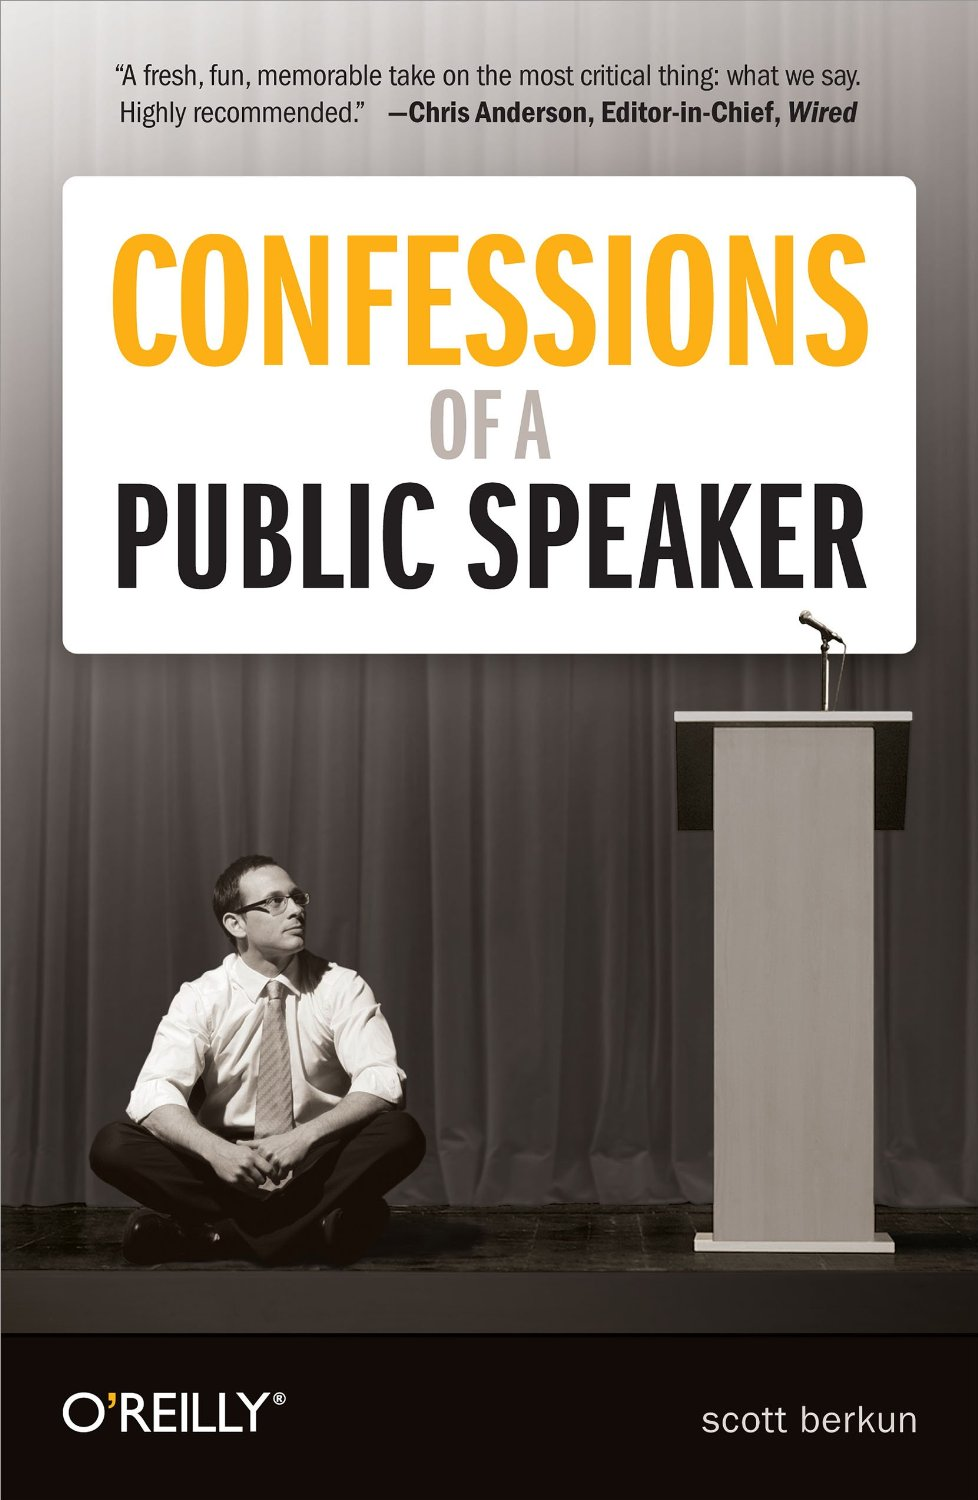 confessions-of-a-public-speaker.jpg